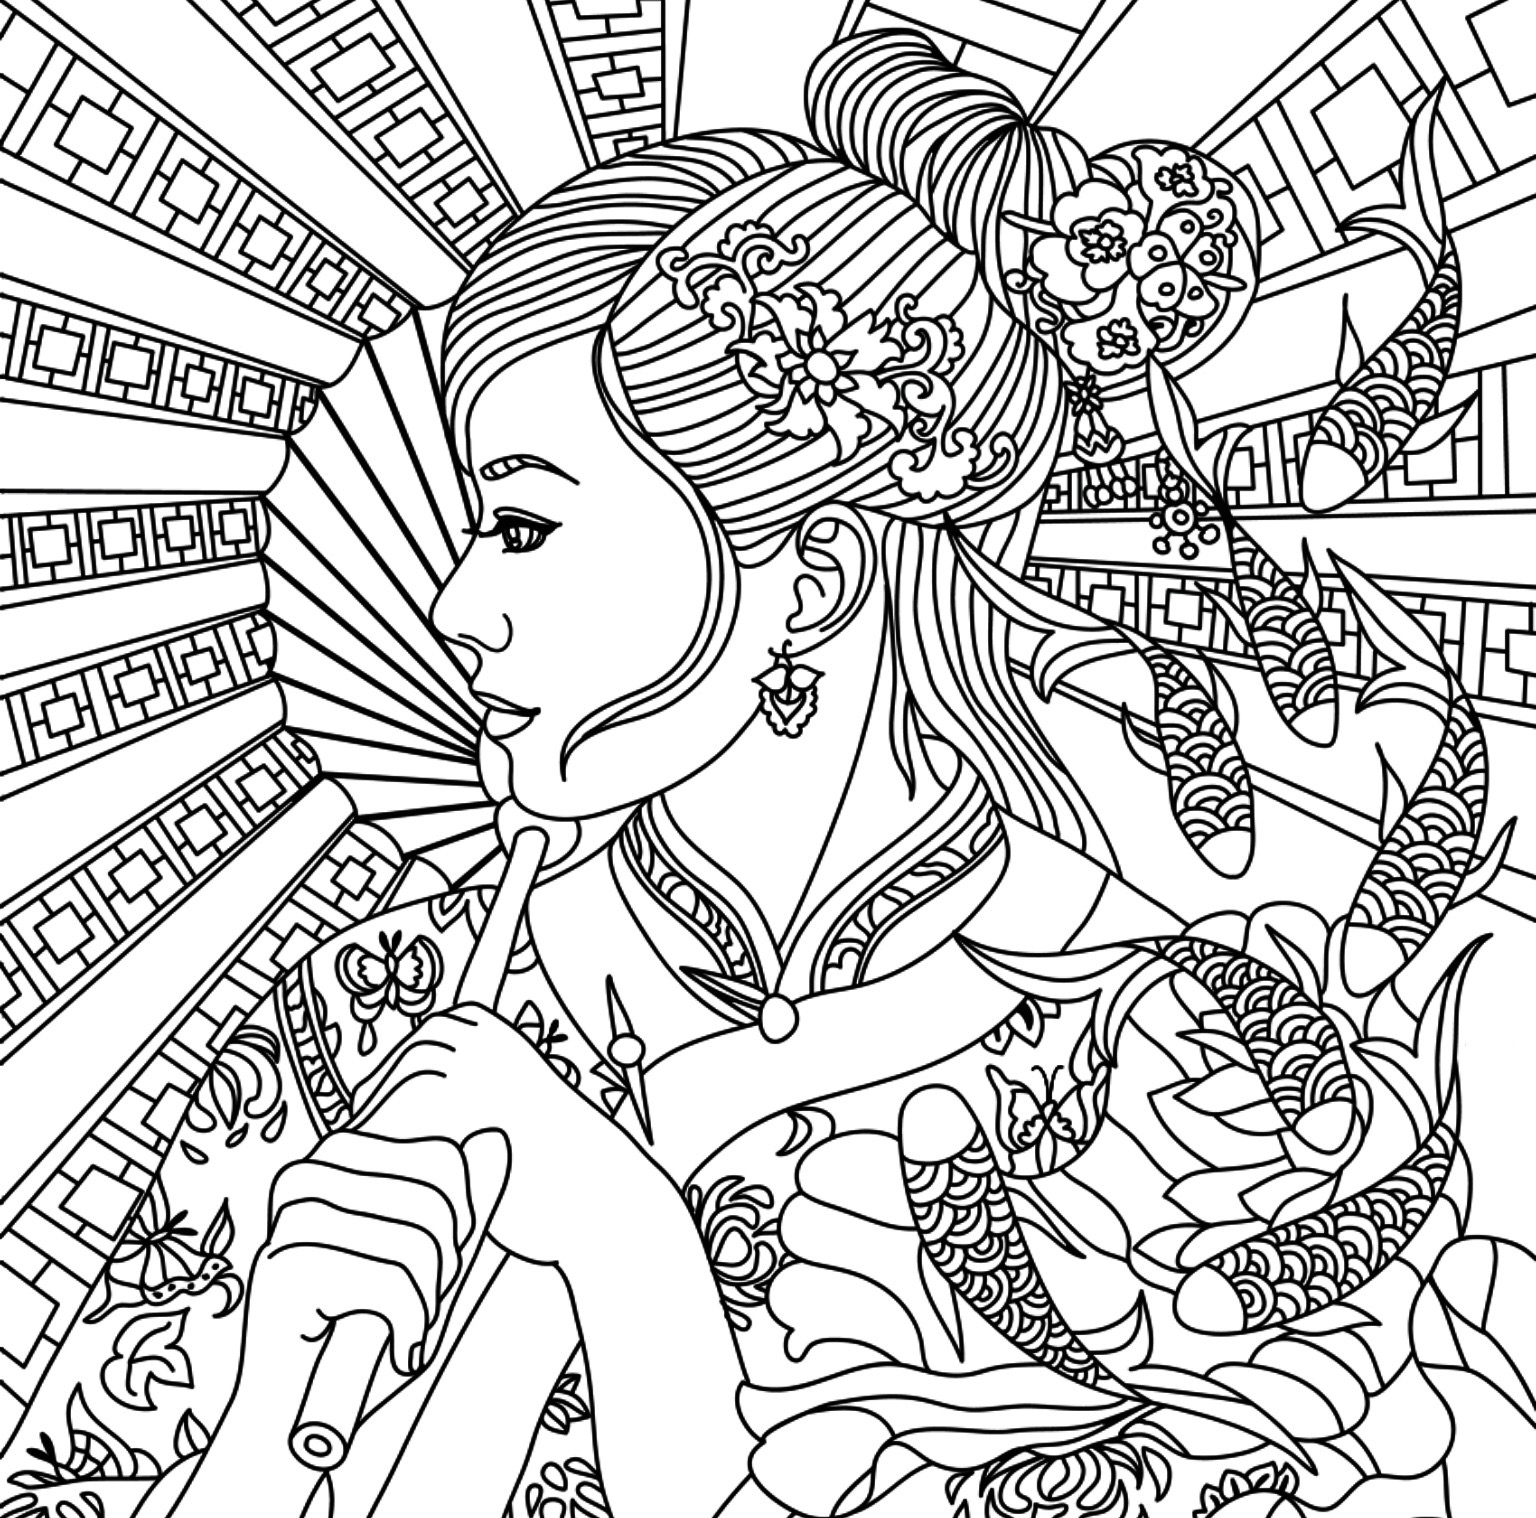 1536x1518 Koi Fish Coloring Page Leversetdujourfo Collection